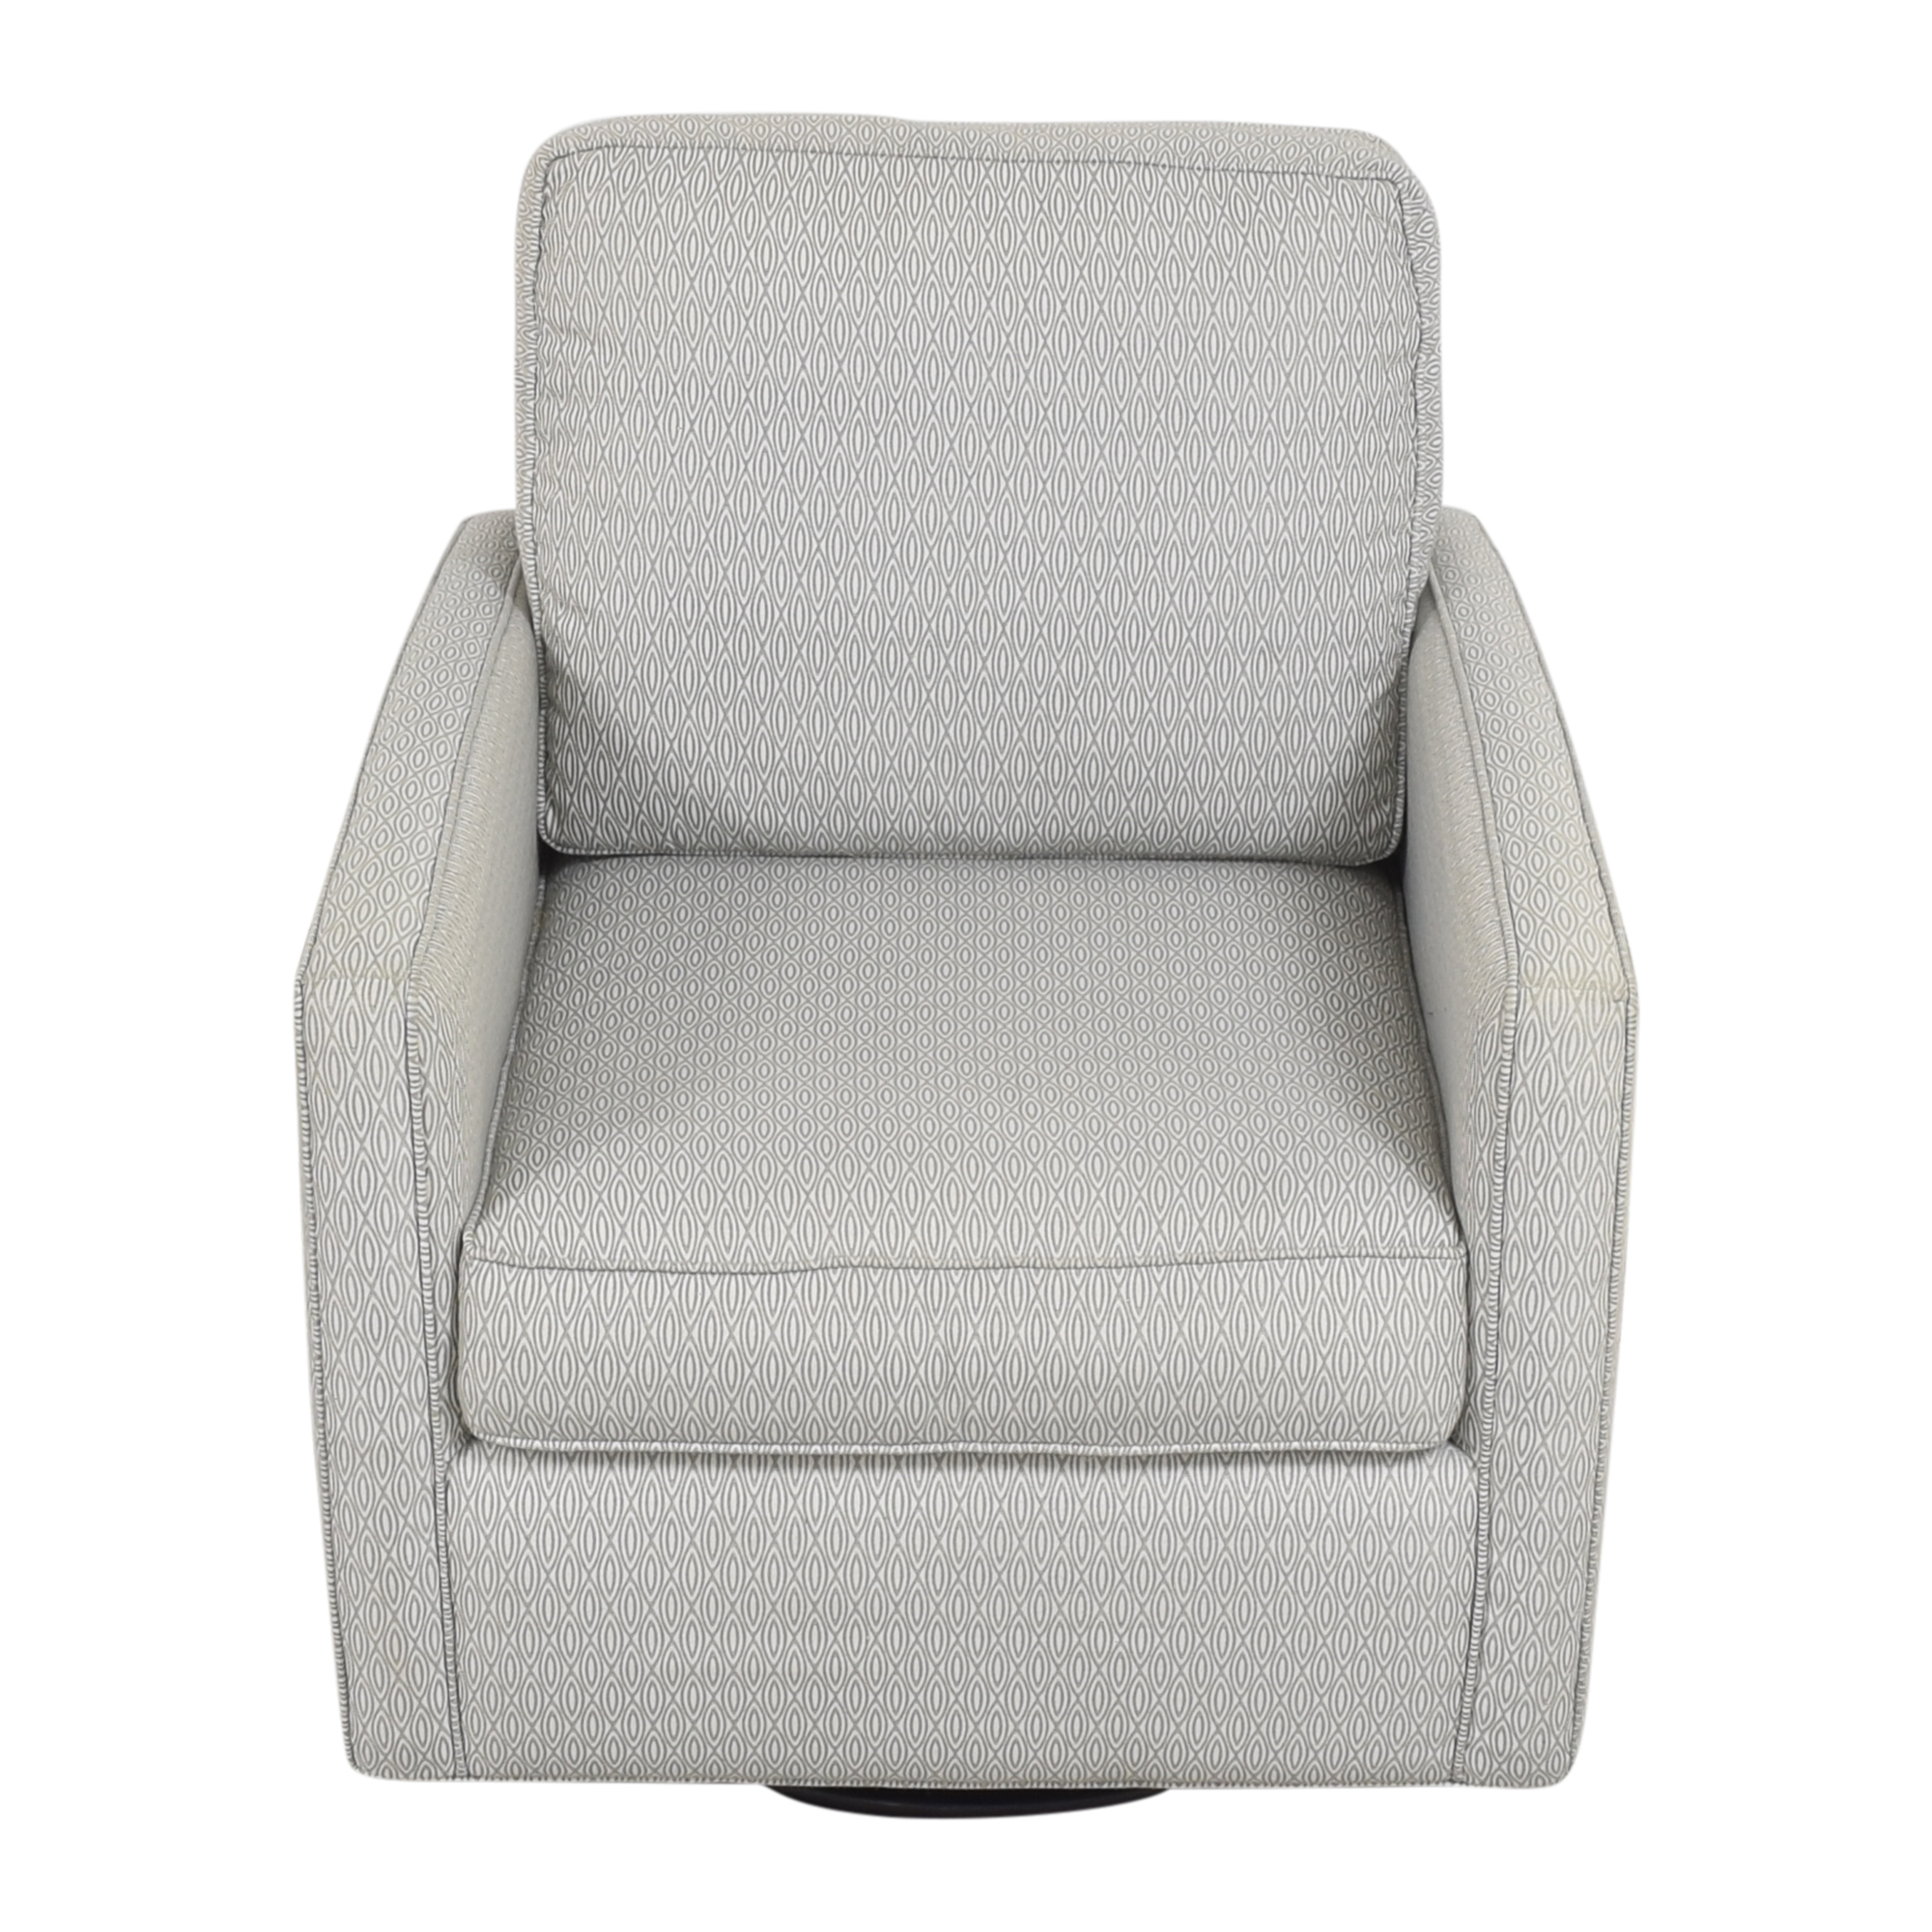 Younger Furniture Younger Furniture Lincoln Swivel Glider Chair dimensions